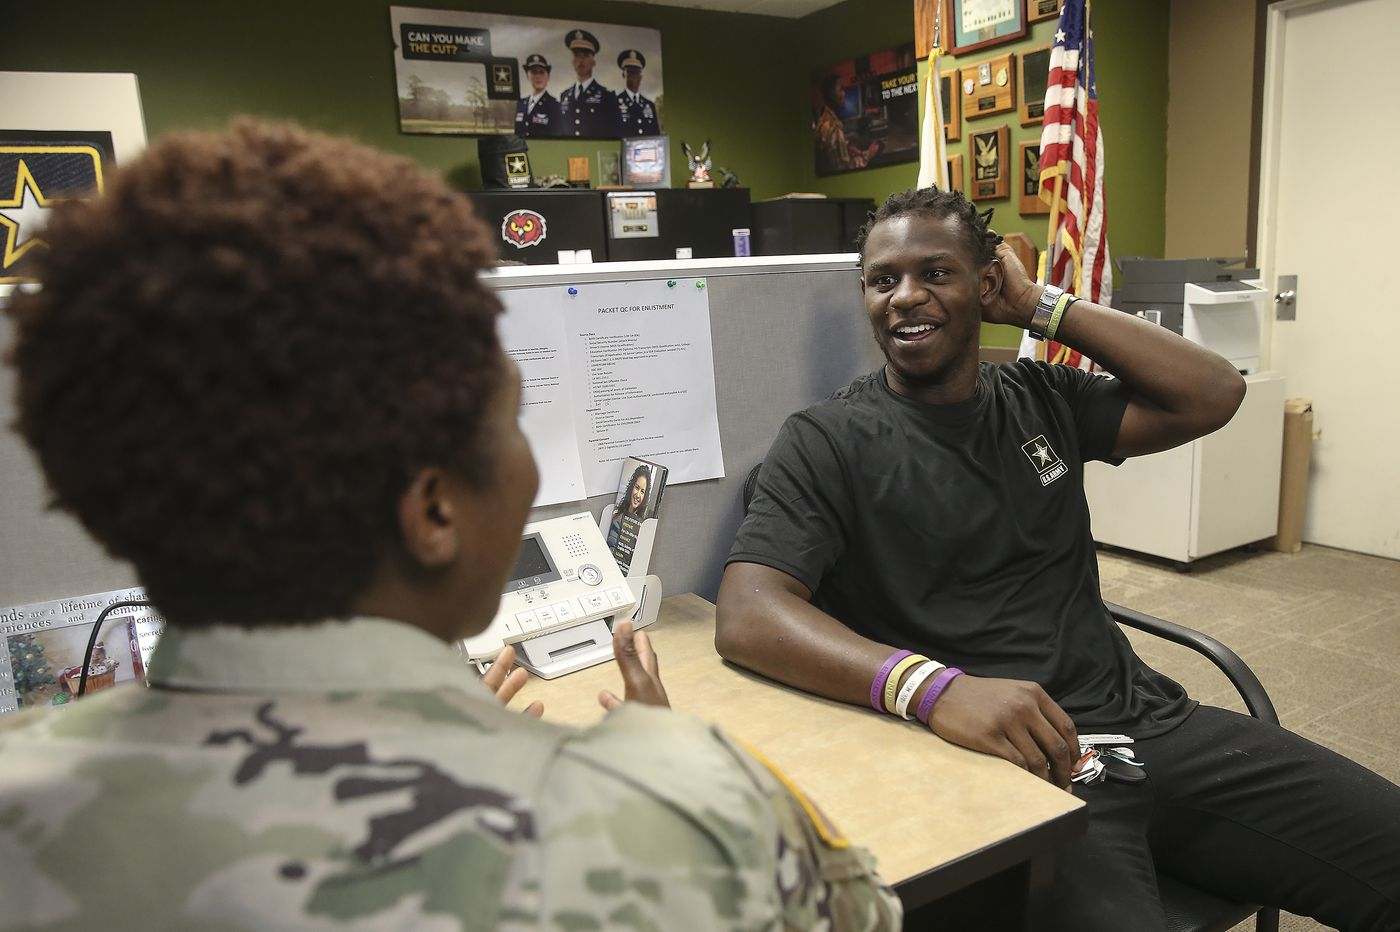 A stray bullet cost this Philly rugby star his Army dreams. Then the brass read The Inquirer. | Mike Newall